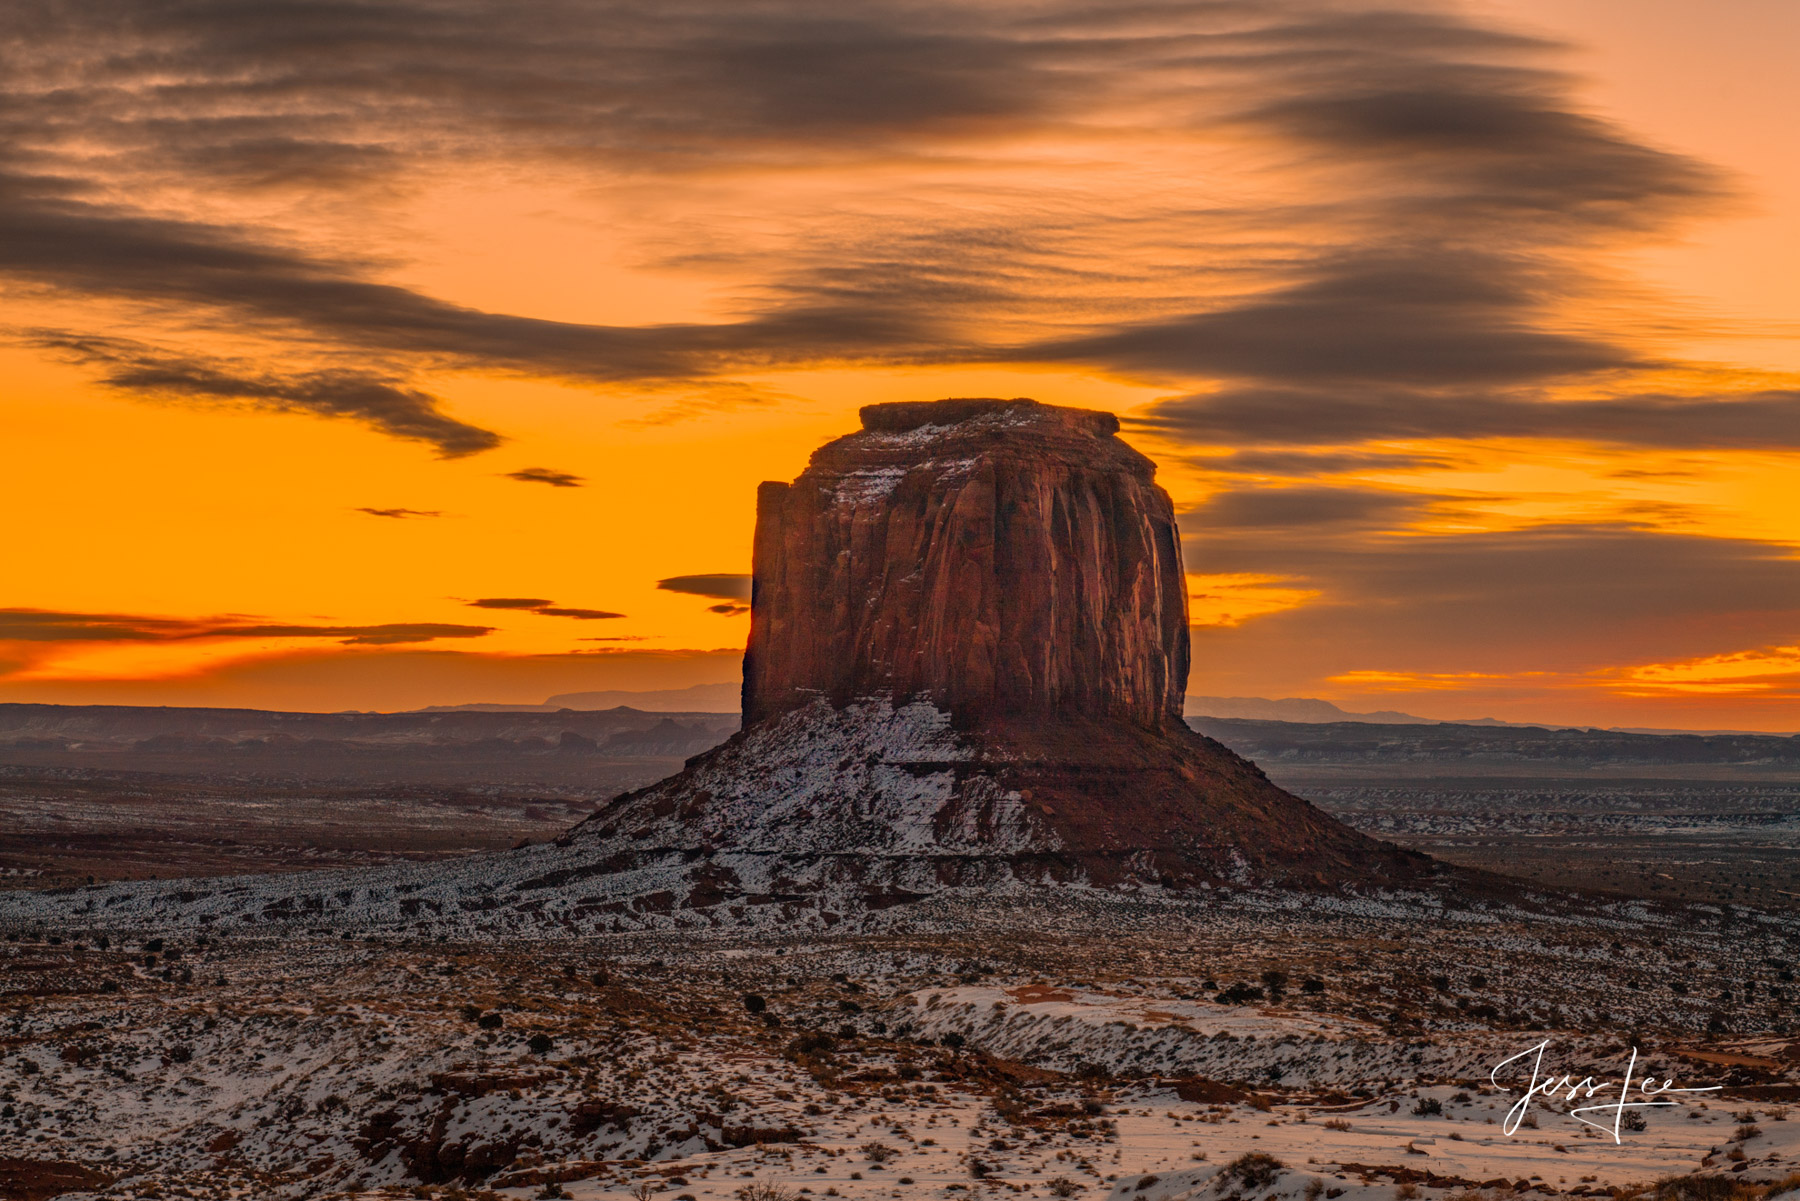 Limited Edition of 50 Exclusive high-resolution Museum Quality Fine Art Prints of Monument Valley morning of the American Southwest...